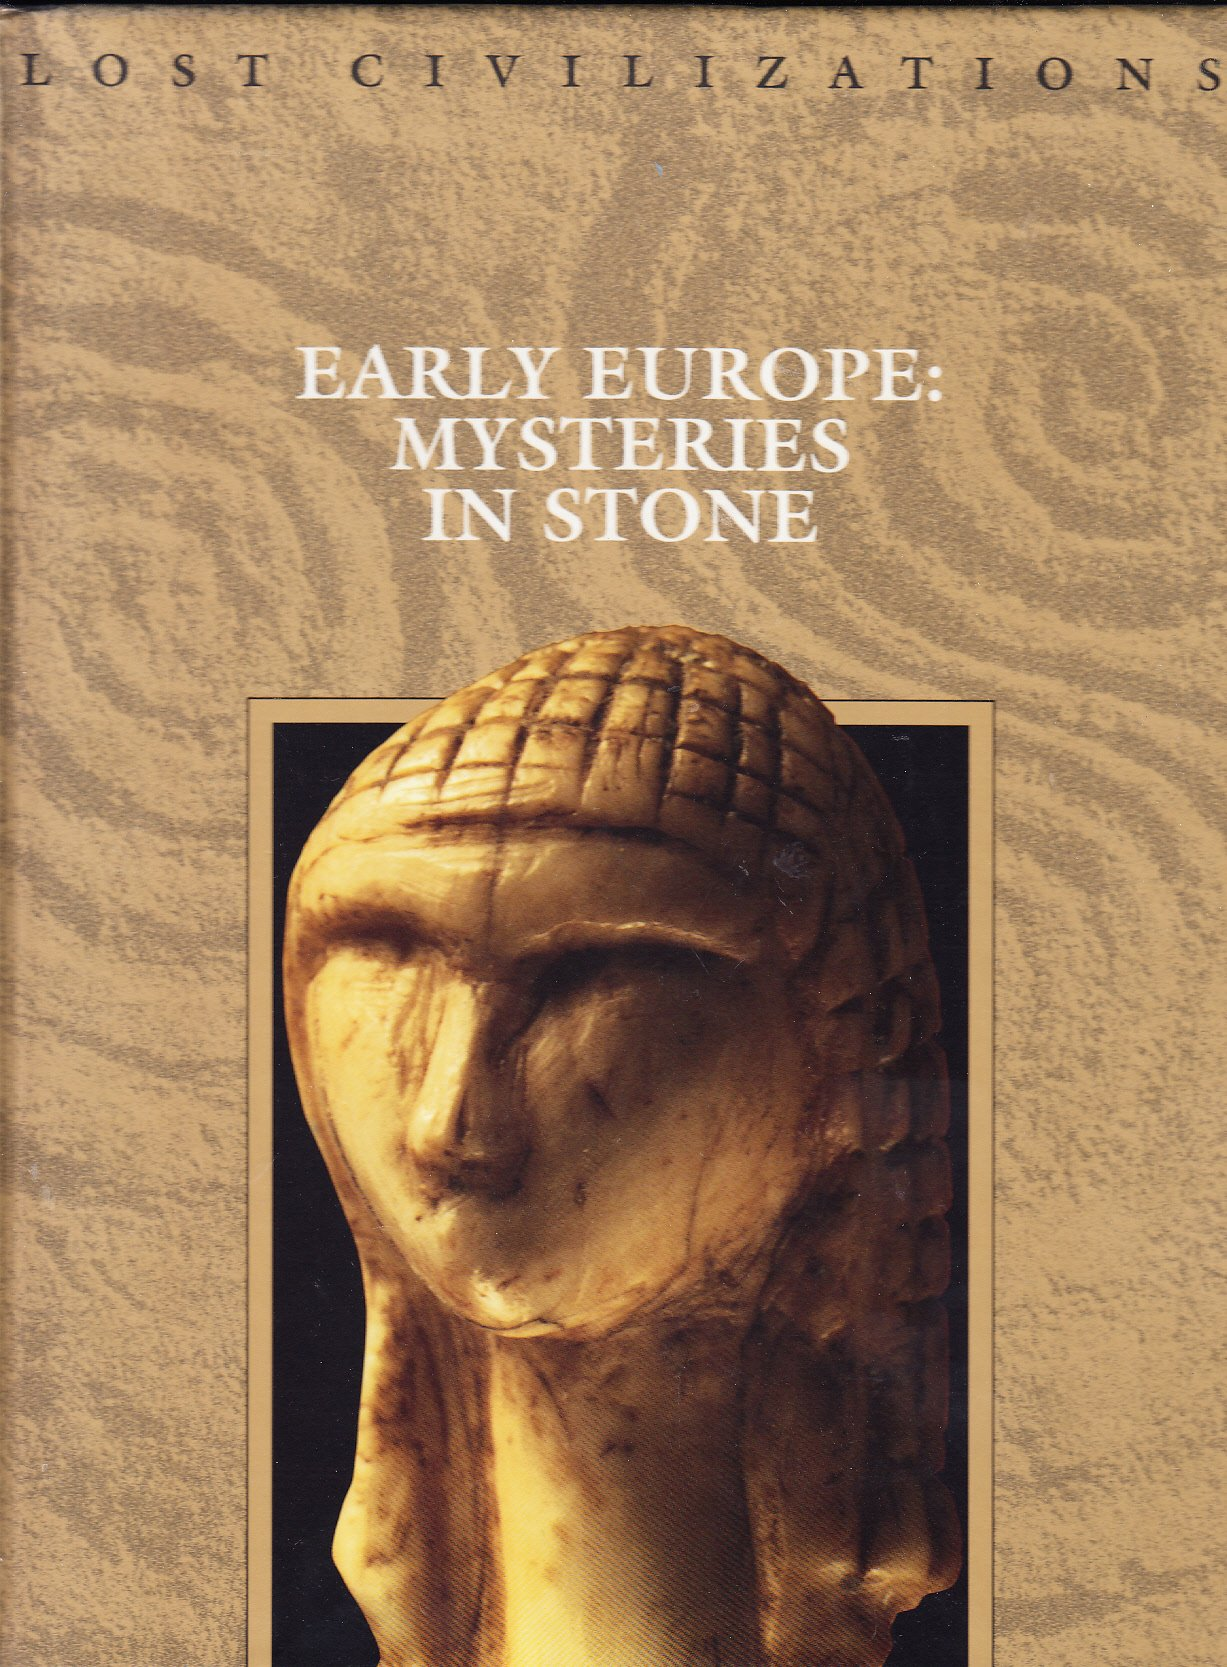 Early Europe: Mysteries in Stone (Lost Civilizations)